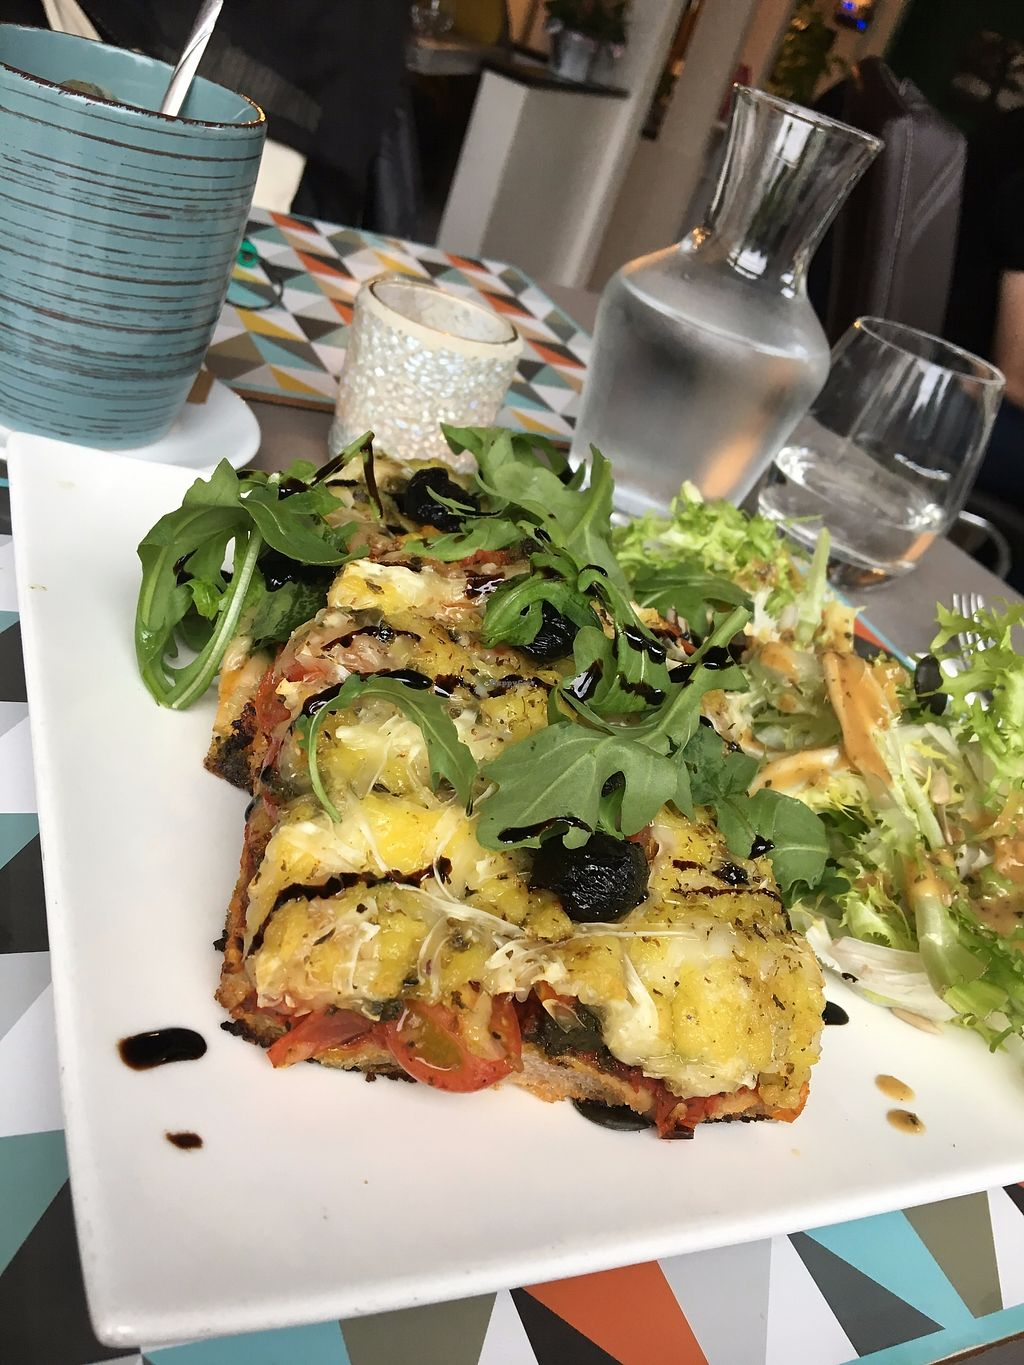 """Photo of L'Eden Sans Gluten  by <a href=""""/members/profile/tcsengusz"""">tcsengusz</a> <br/>pizza slices w/ tomato and lots of vegan cheese and balsamic vinaigrette <br/> July 27, 2017  - <a href='/contact/abuse/image/76725/285437'>Report</a>"""